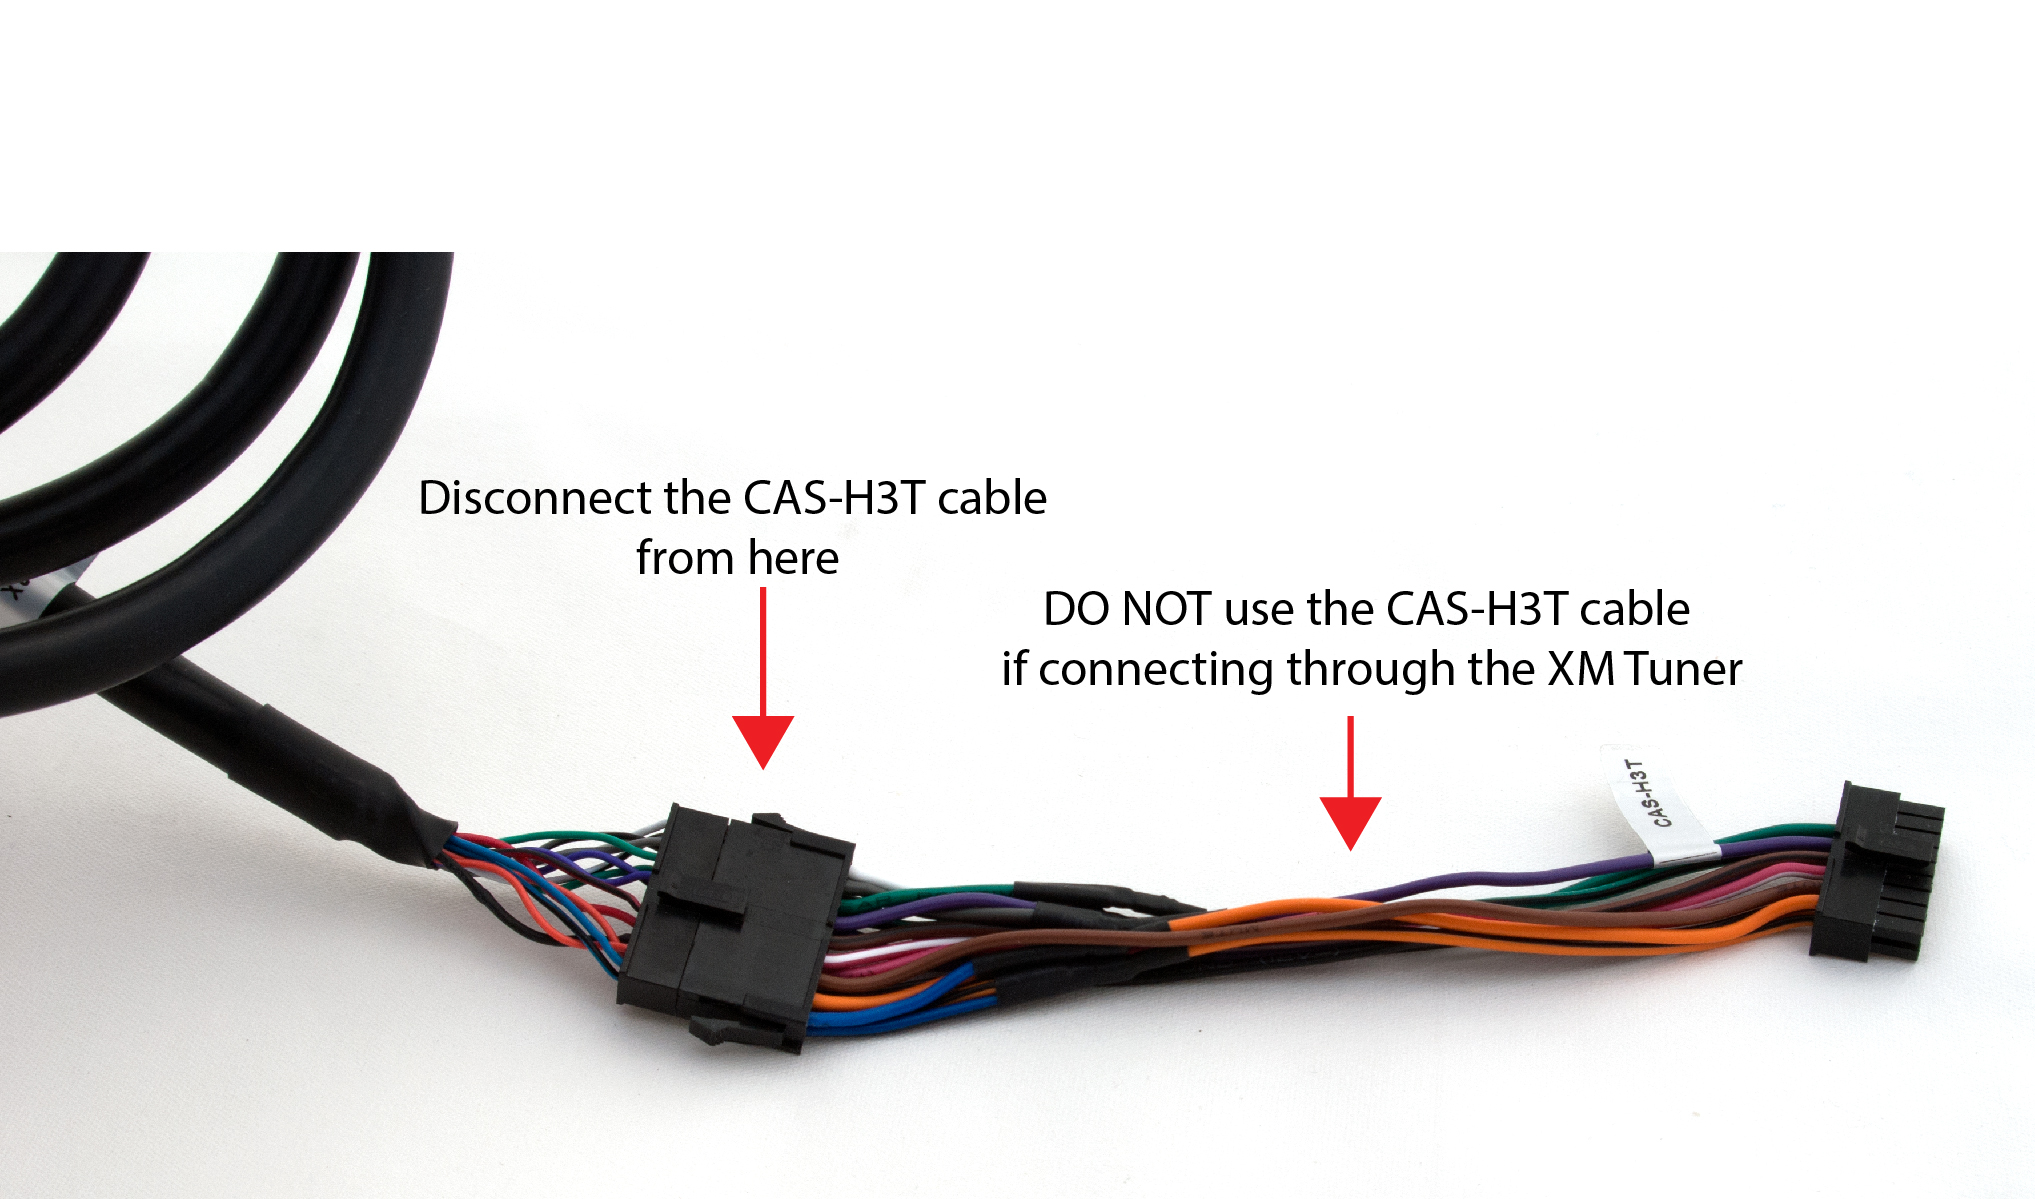 BT45 FAQ and Troubleshooting